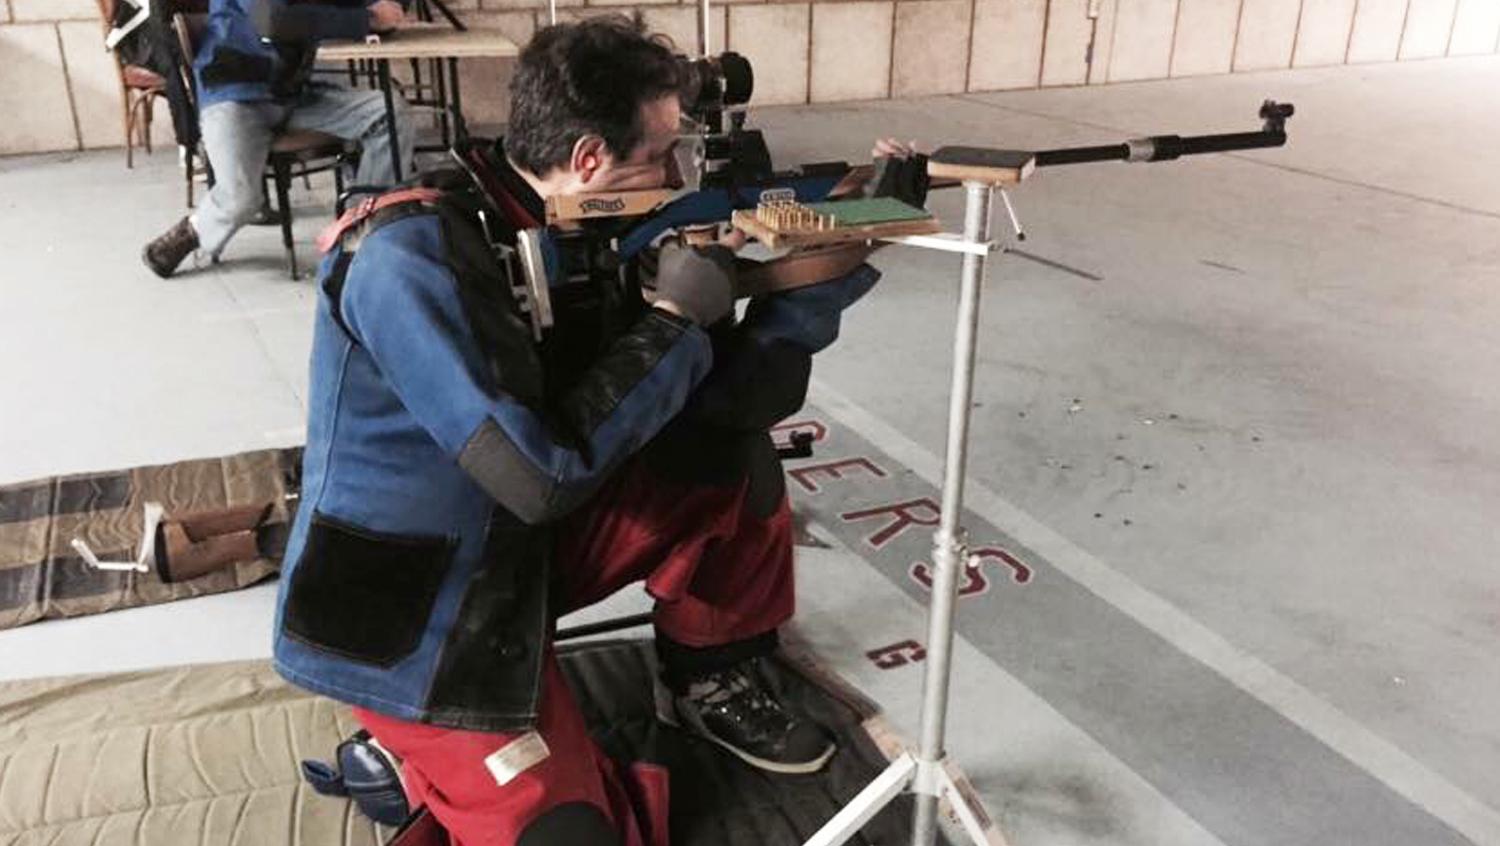 Upstate New York Marksmanship Club Takes Aim With NRA Foundation Grant Support